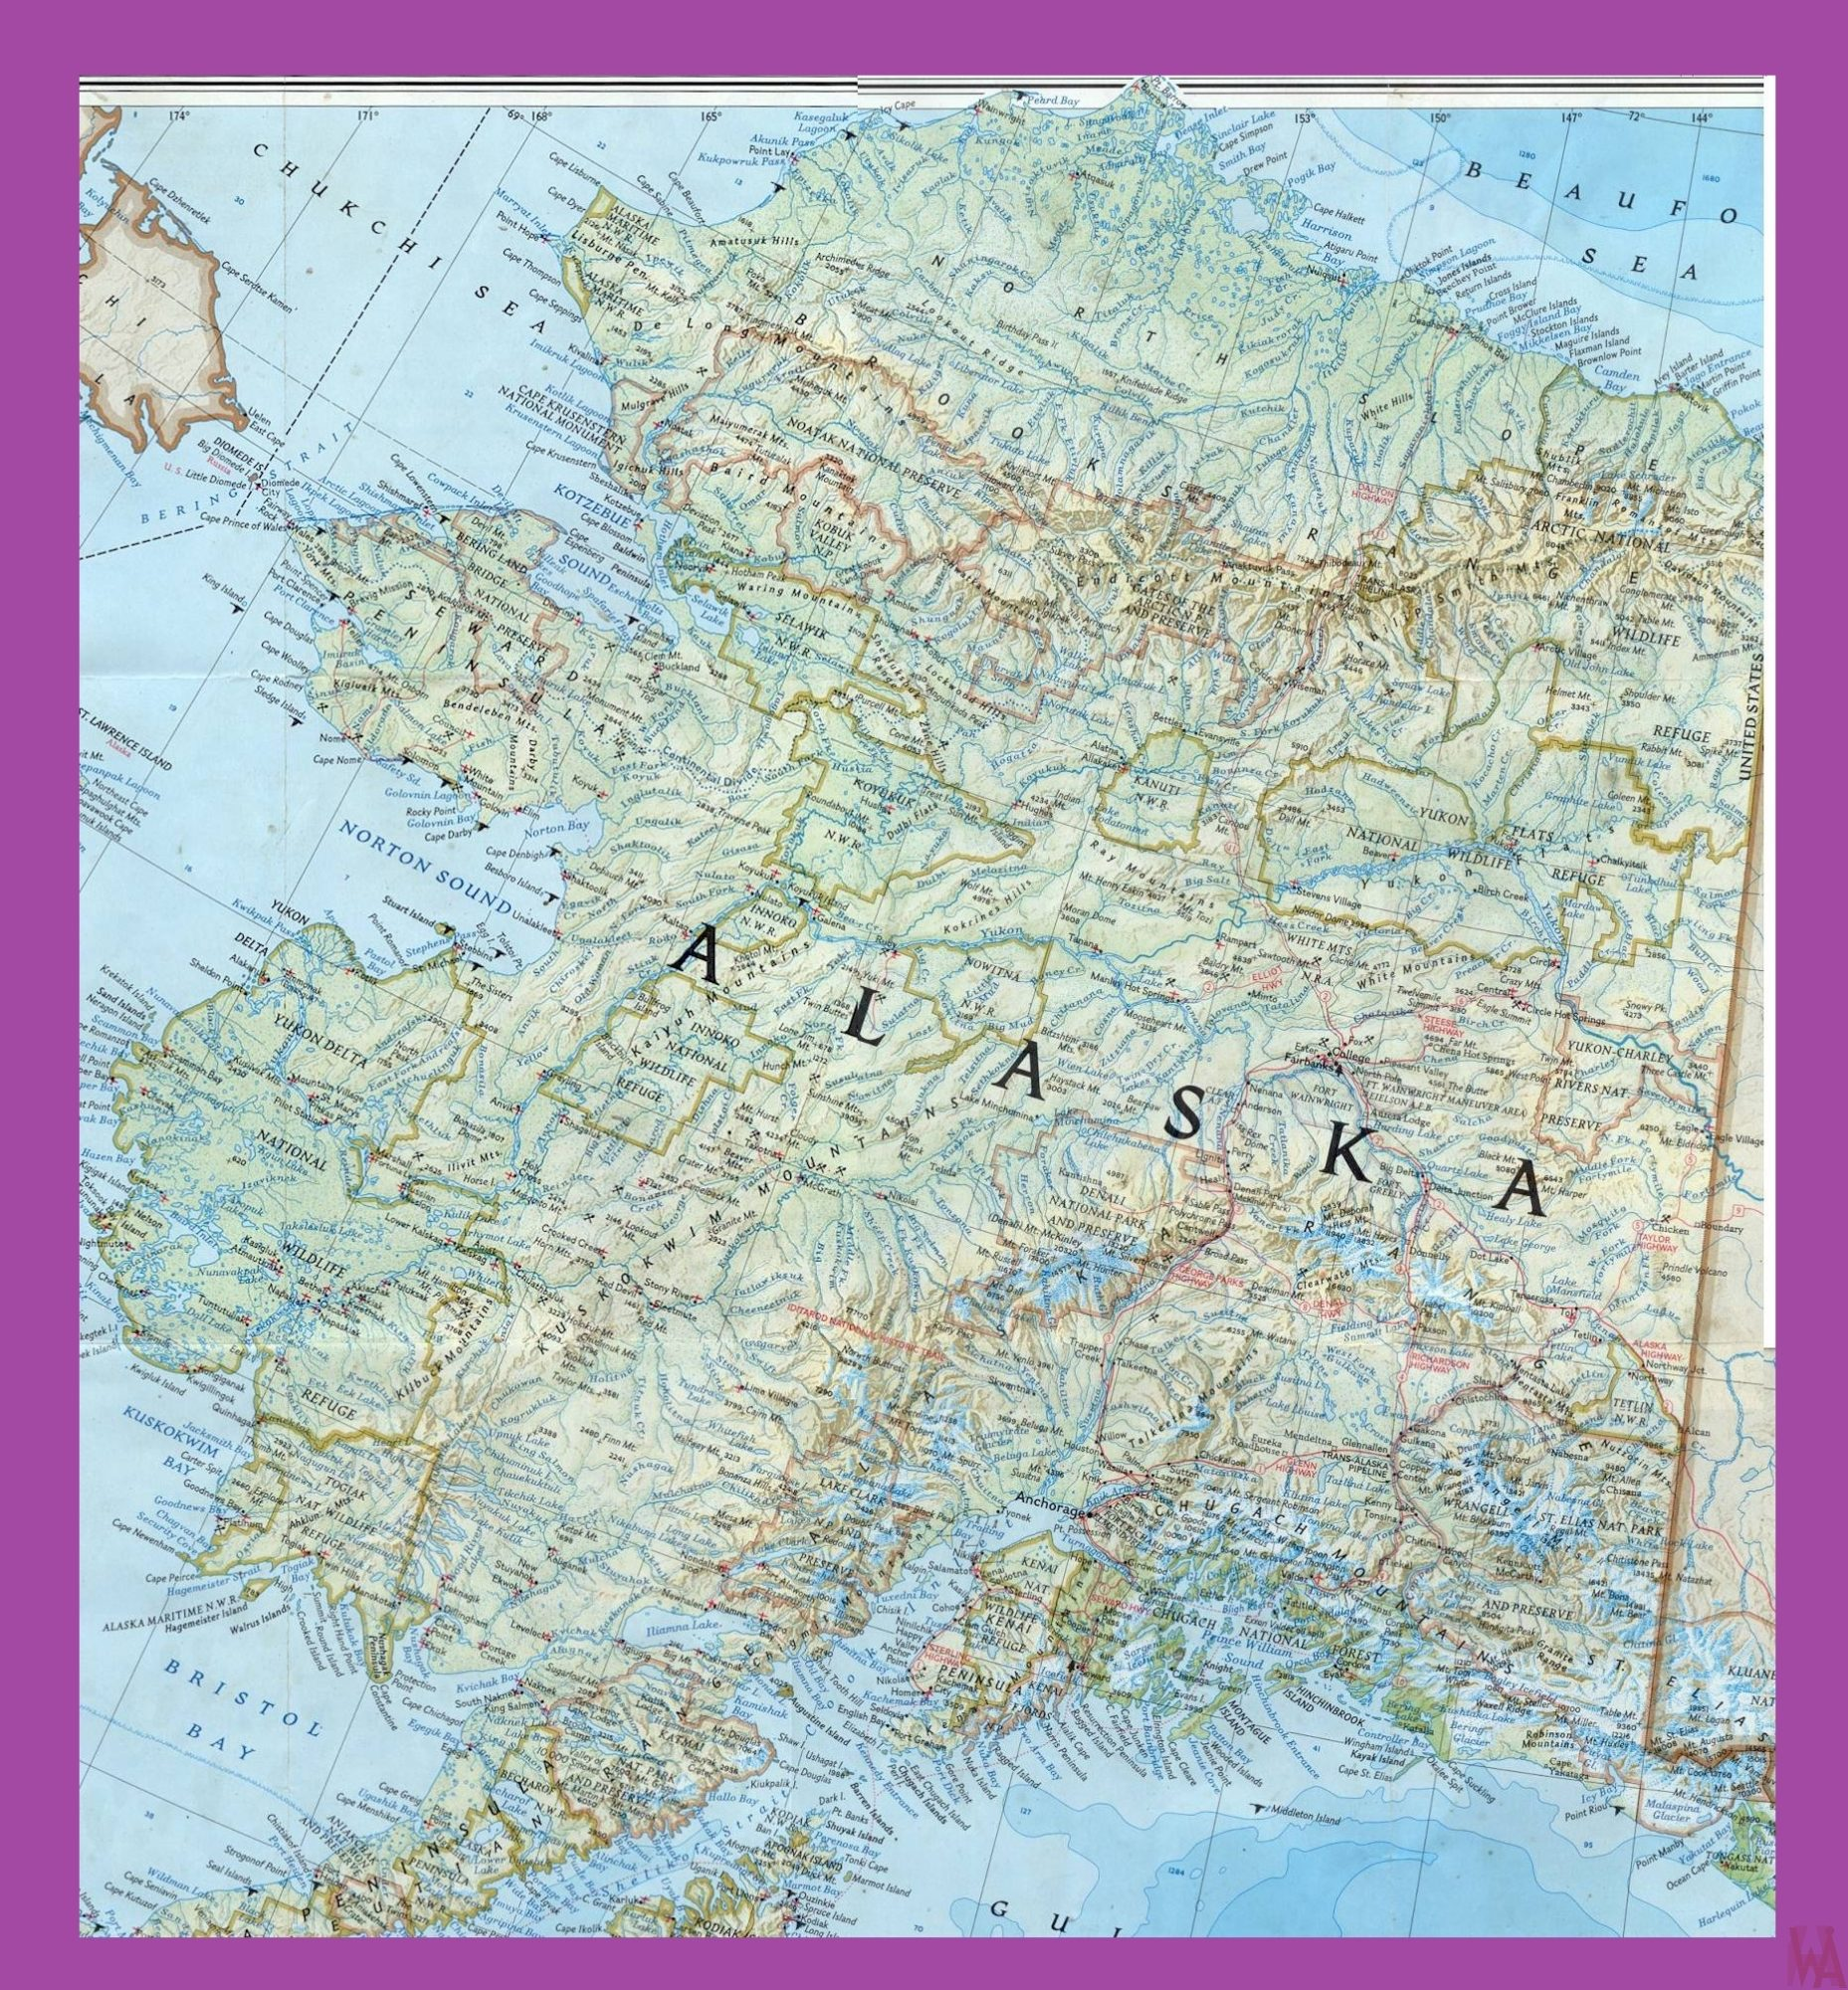 Map of Alaska | Political, Physical, Geographical, Transportation, And Cities Map